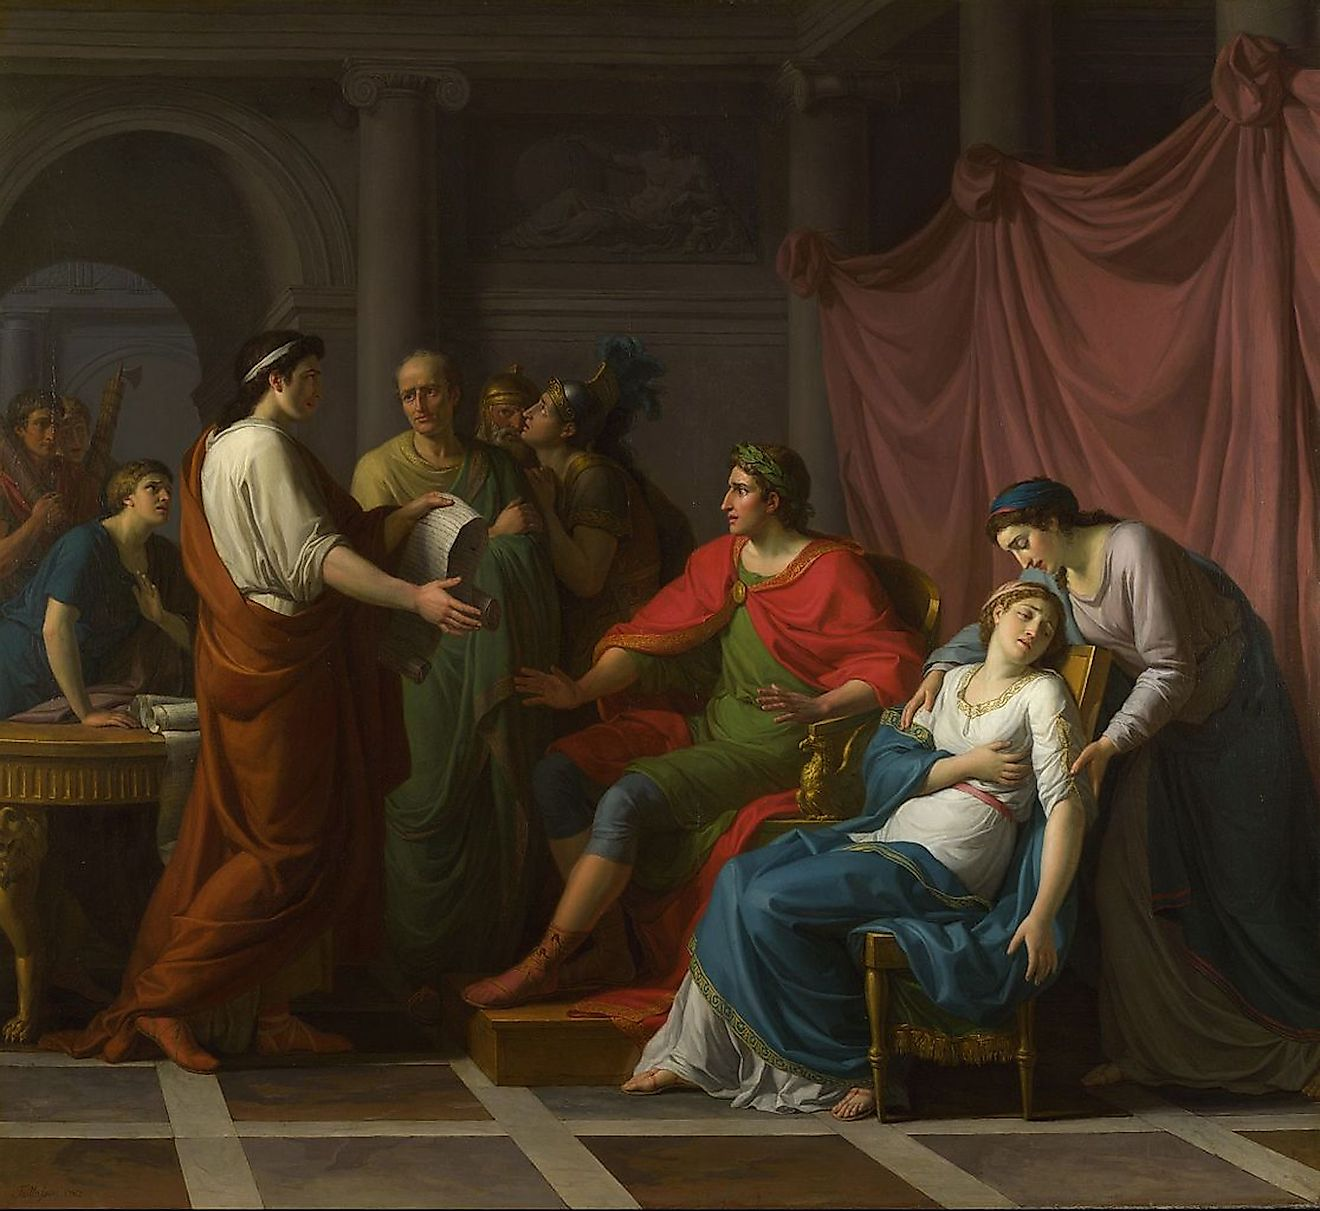 Virgil reading Aeneid, Book VI, to Augustus and Octavia, by Taillasson. Image credit: National Gallery/Public domain